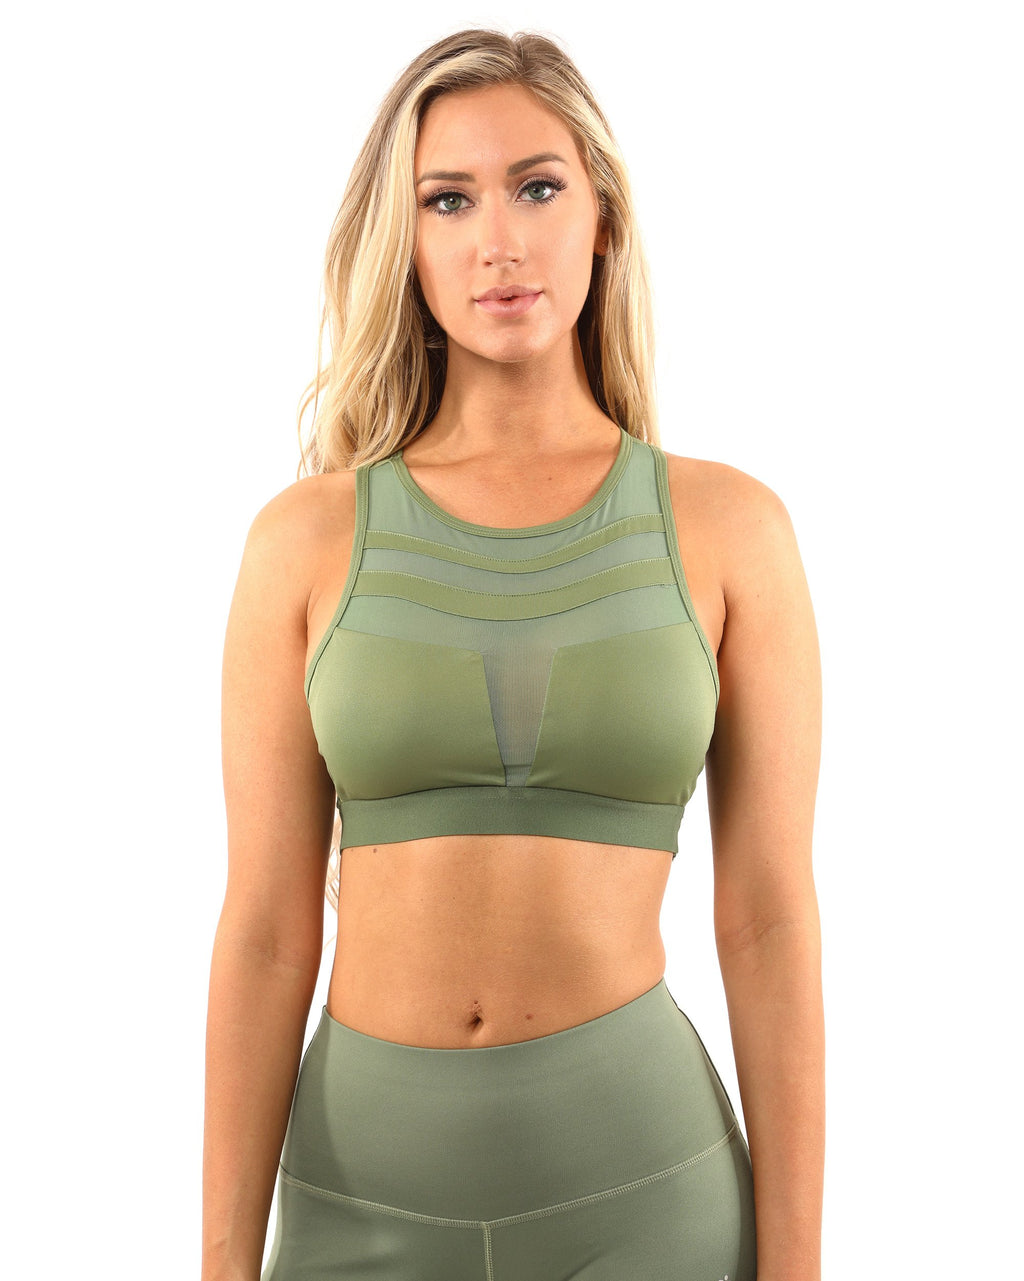 Huntington Sports Bra - Olive Green - olivias-room-boutique